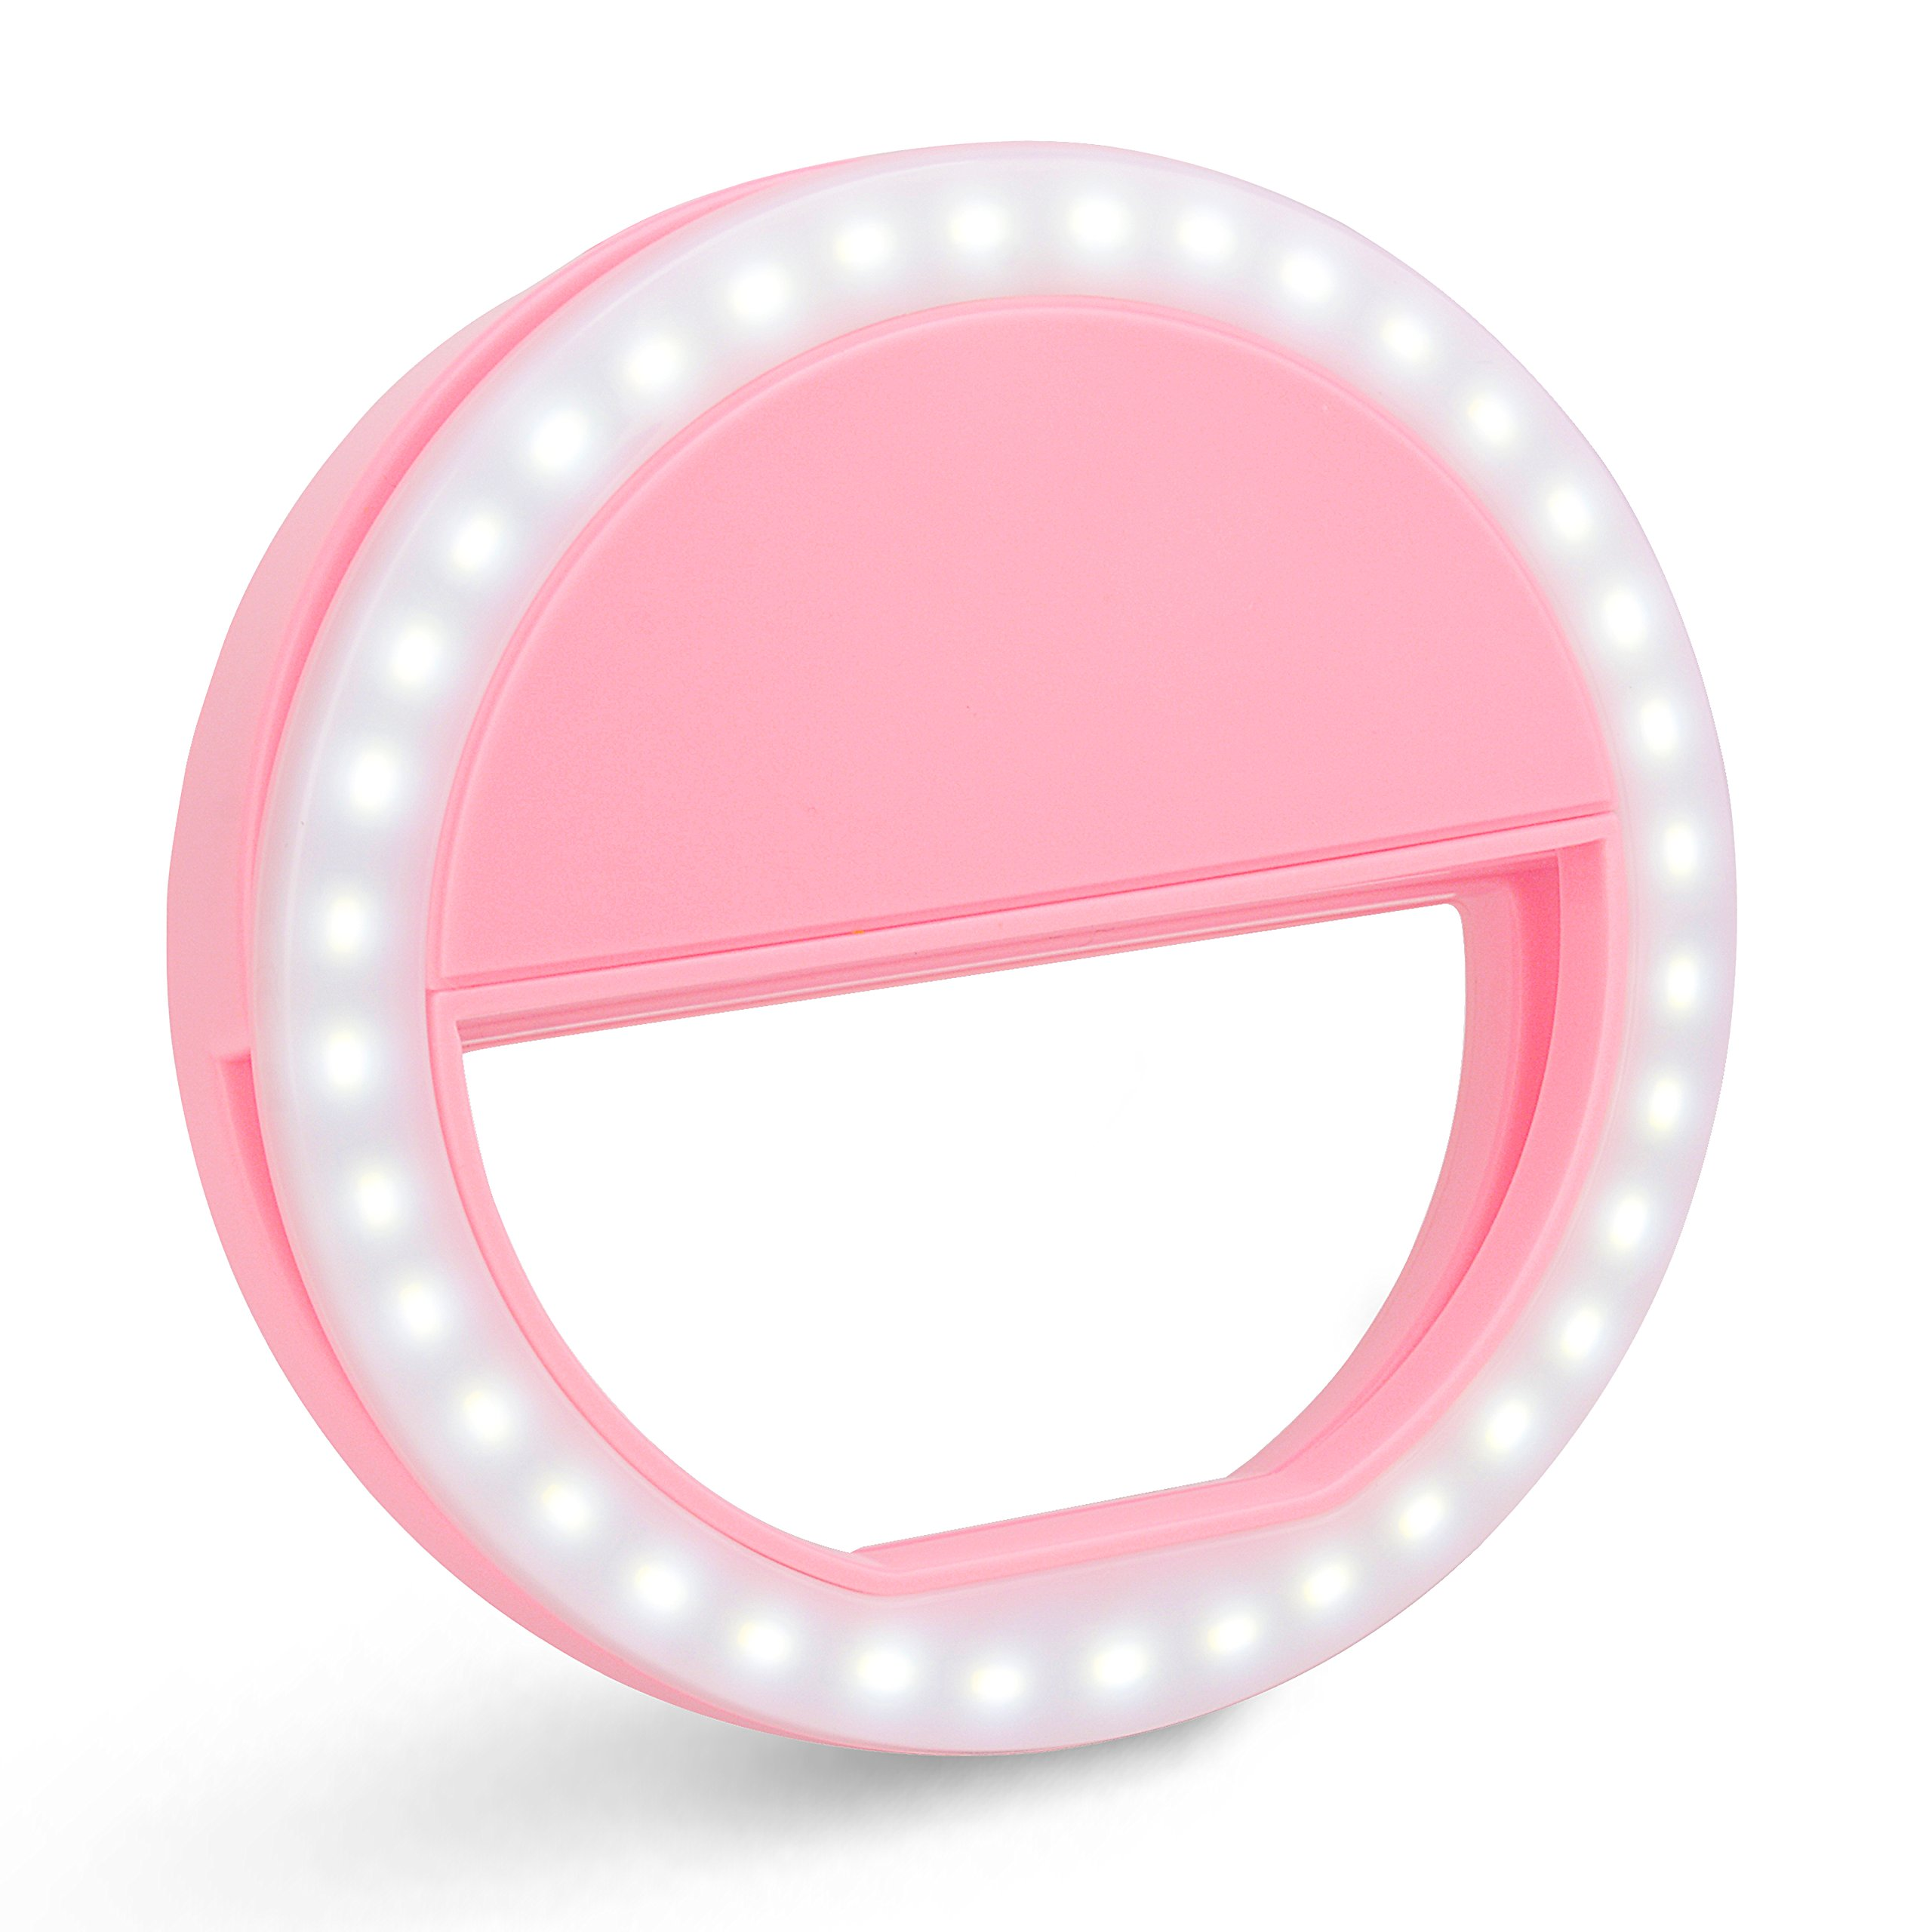 Selfie Ring Light with 36 LED Bulbs, ZOMEI SG04 Flash Lamp Clip Ring Lights Fill-in Lighting Portable for Phone/Tablet/iPad/Laptop Camera with USB Cable- Pink by ZOMEi